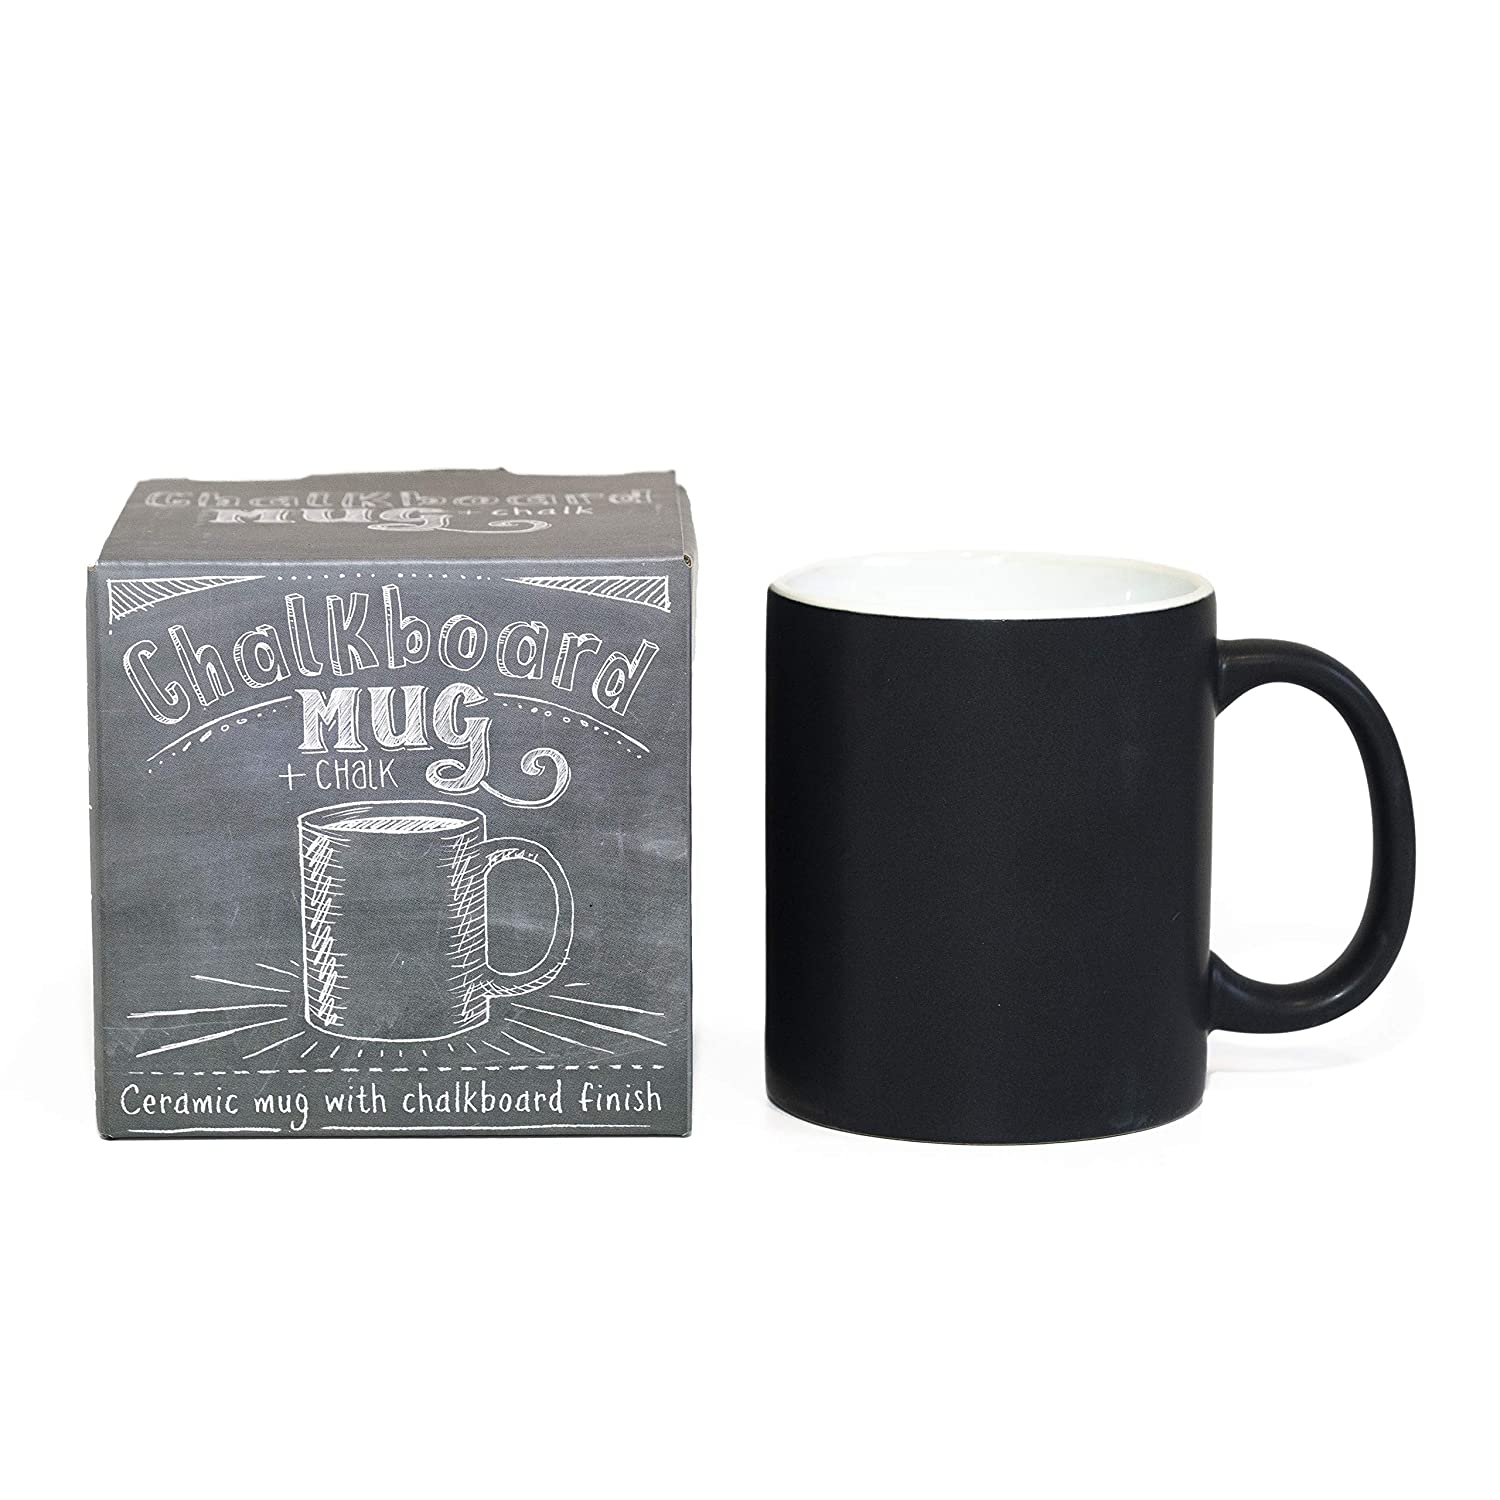 Personalized Chalkboard Ceramic Coffee Mug - Start Each Day with a New Message (Chalk Included)